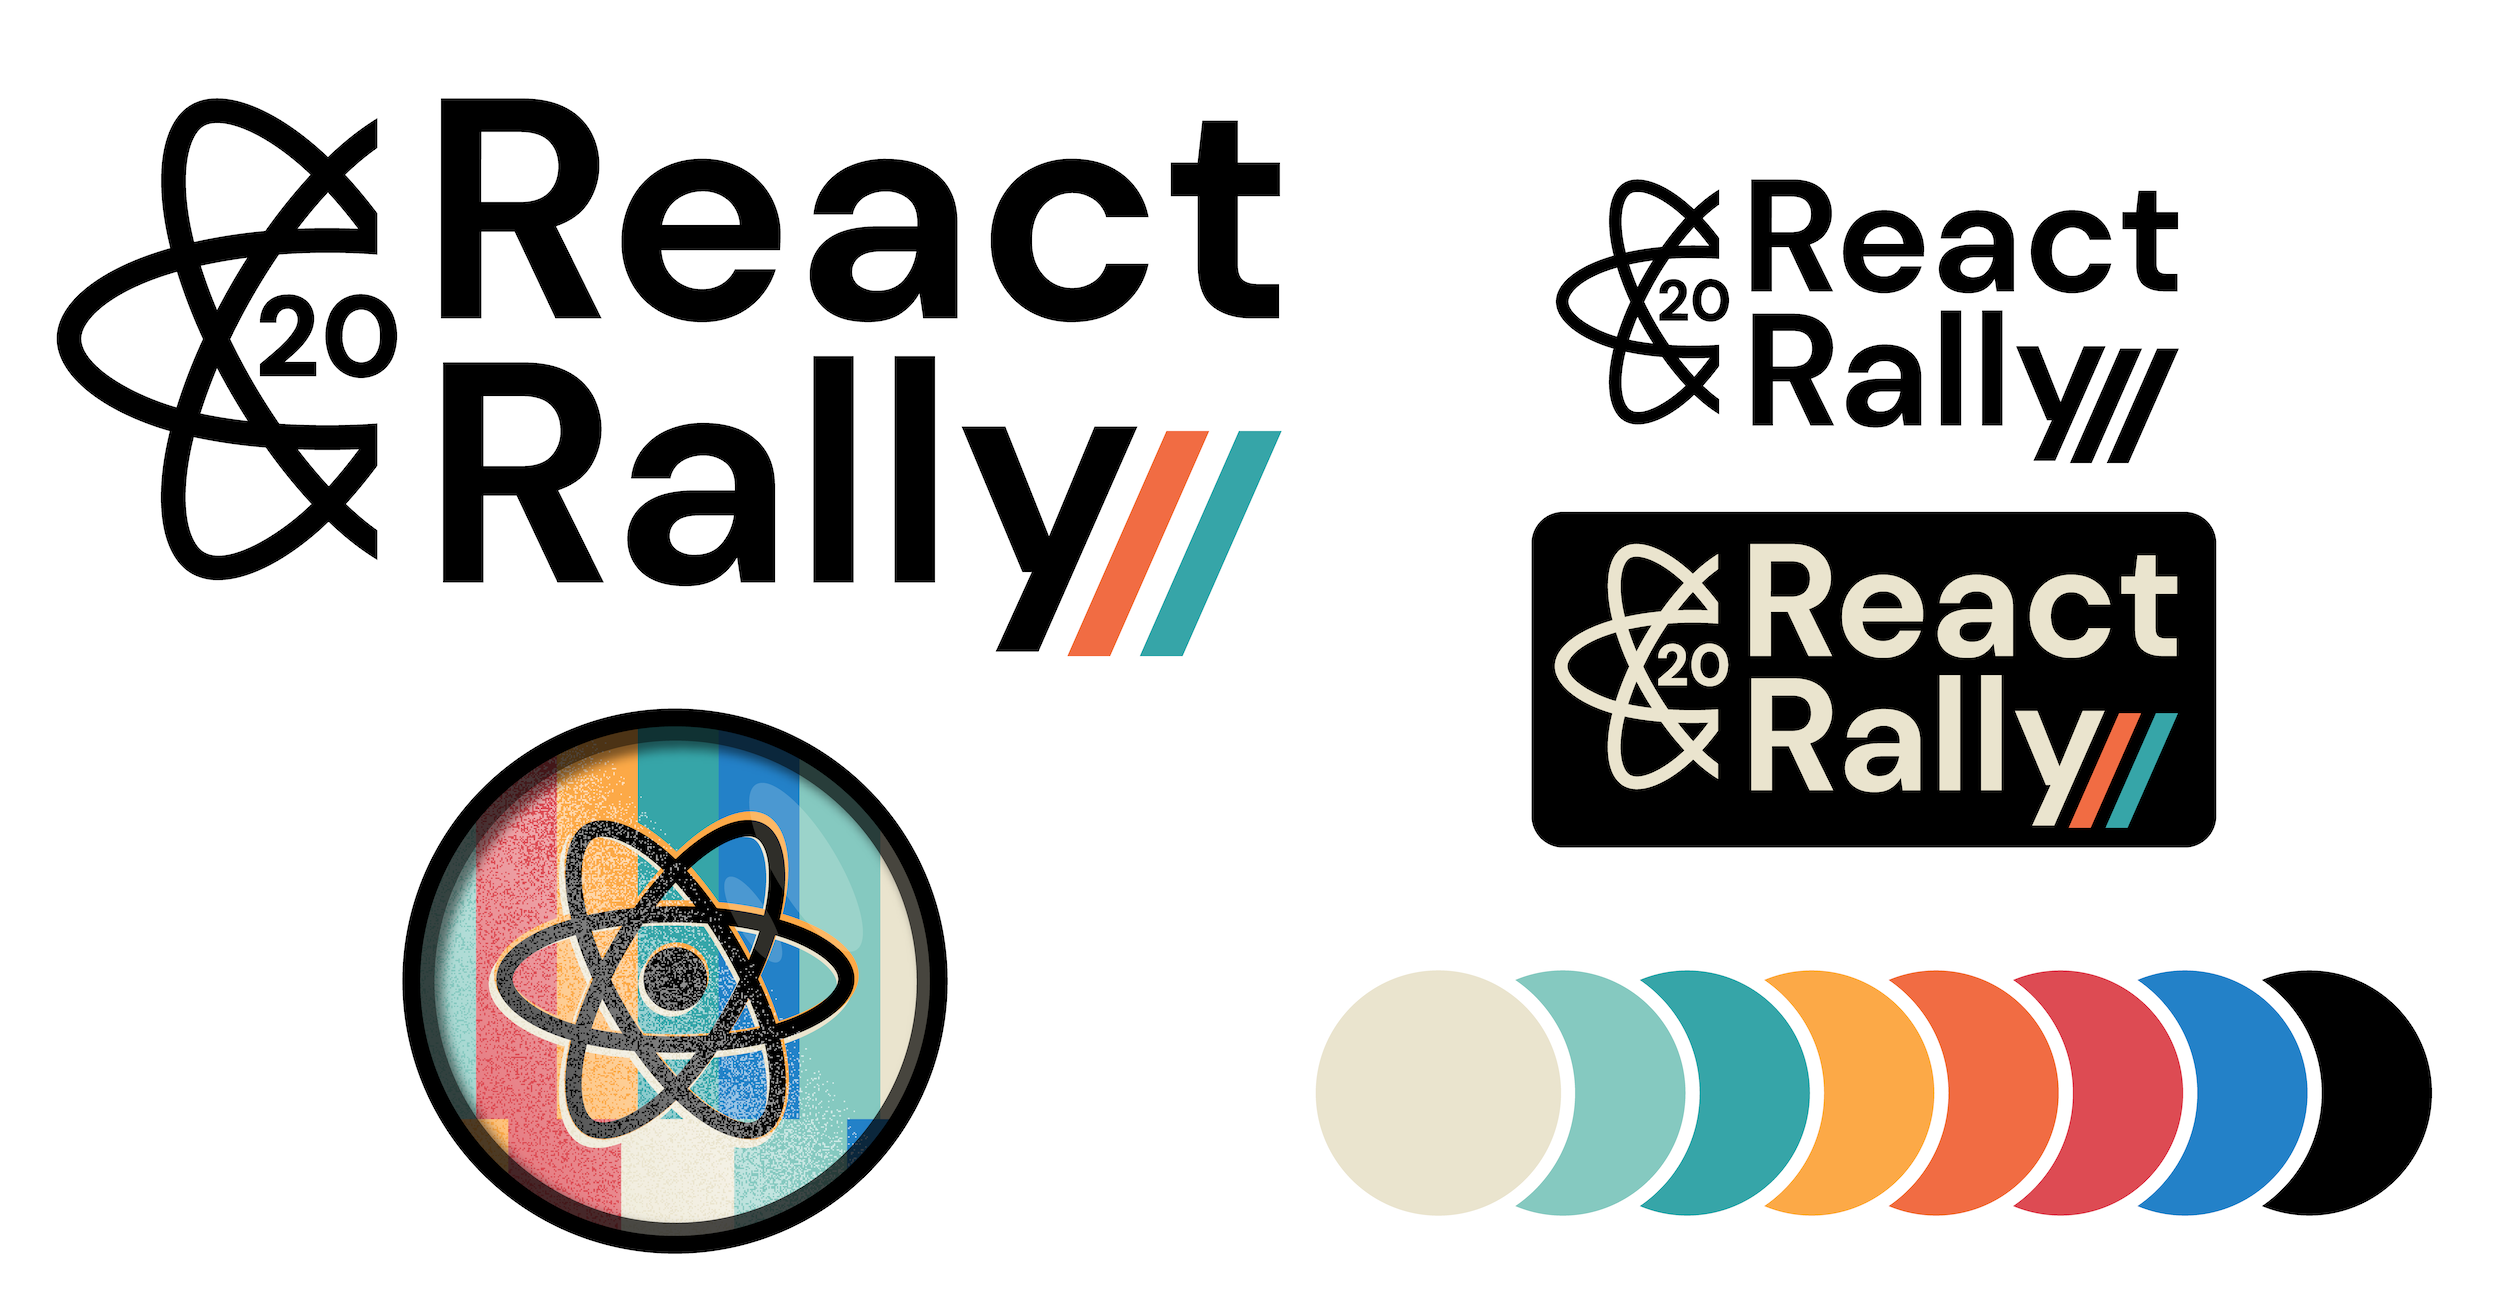 Preview of React Rally 2020 logo and colors